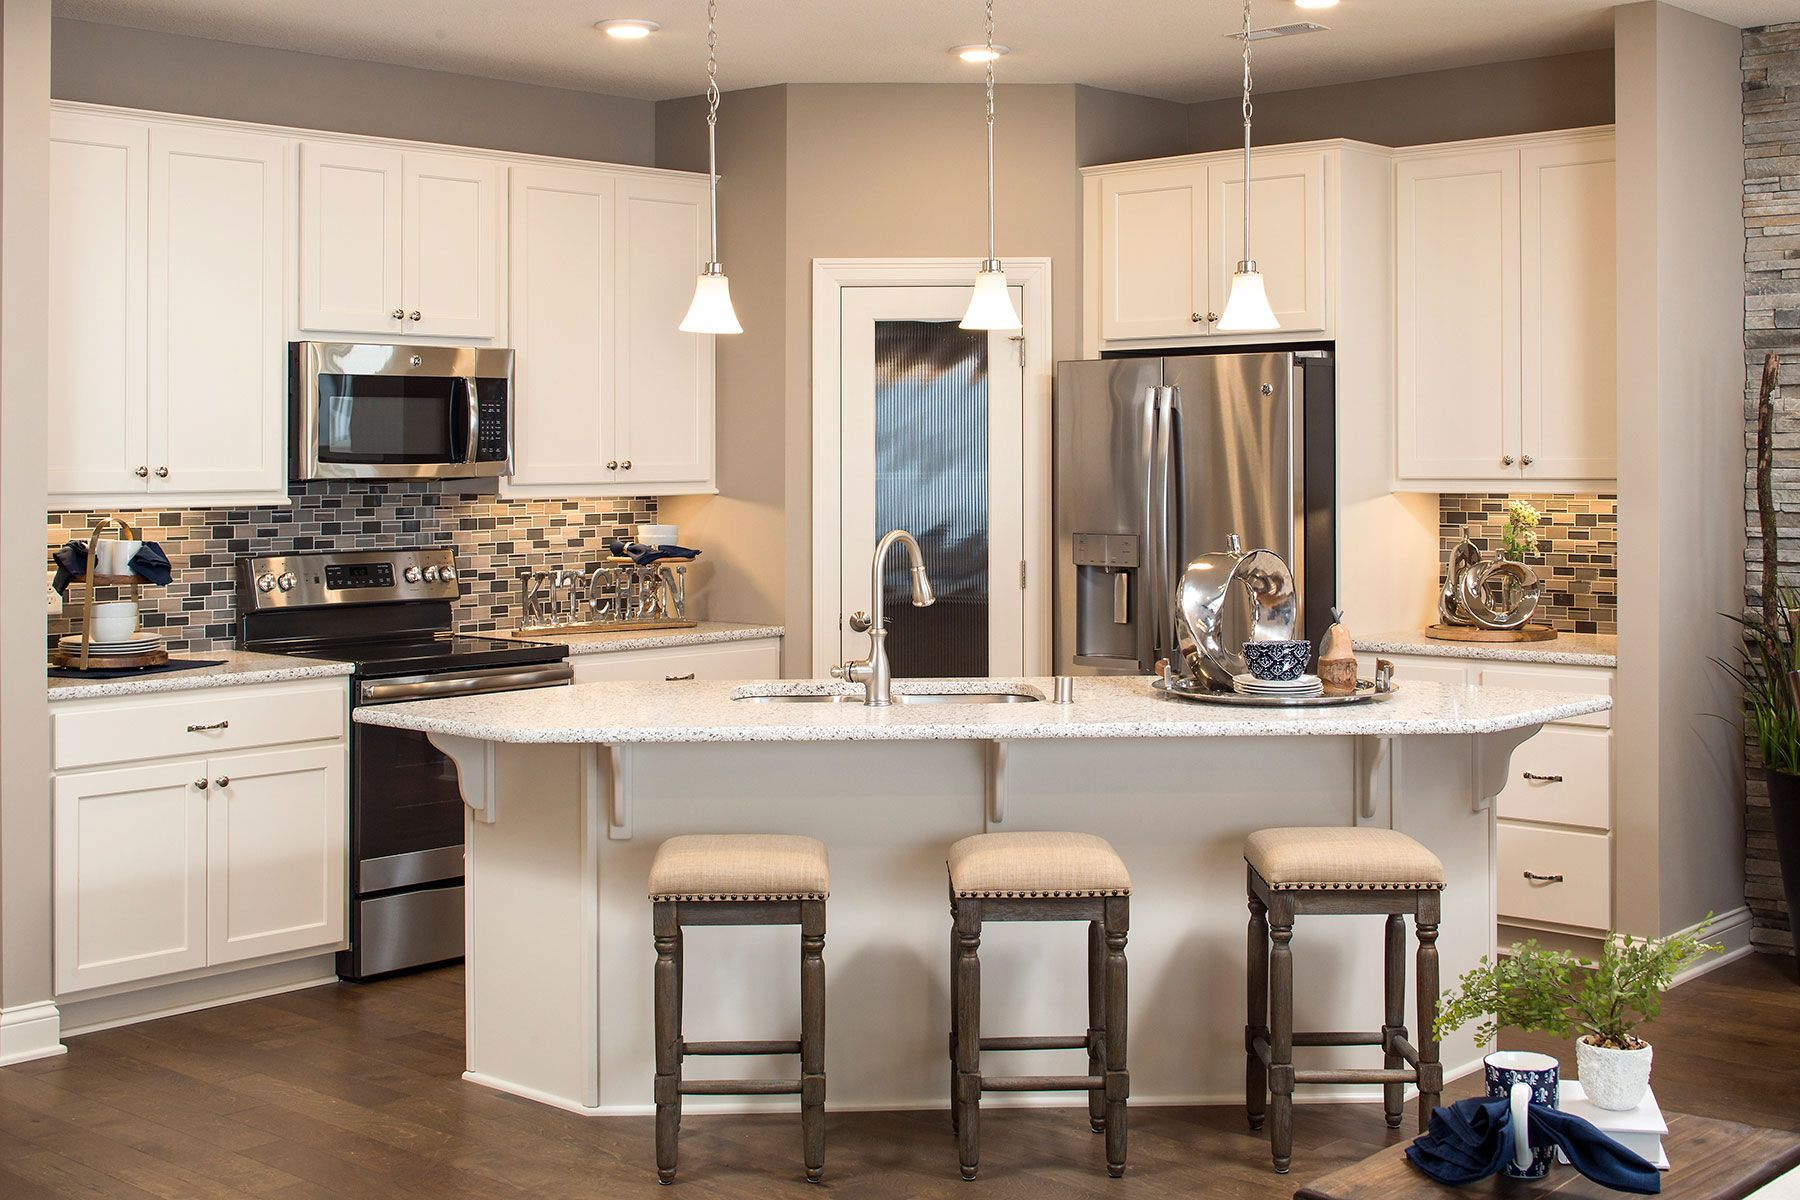 Kitchen featured in the Elmwood IV By M/I Homes in Minneapolis-St. Paul, MN